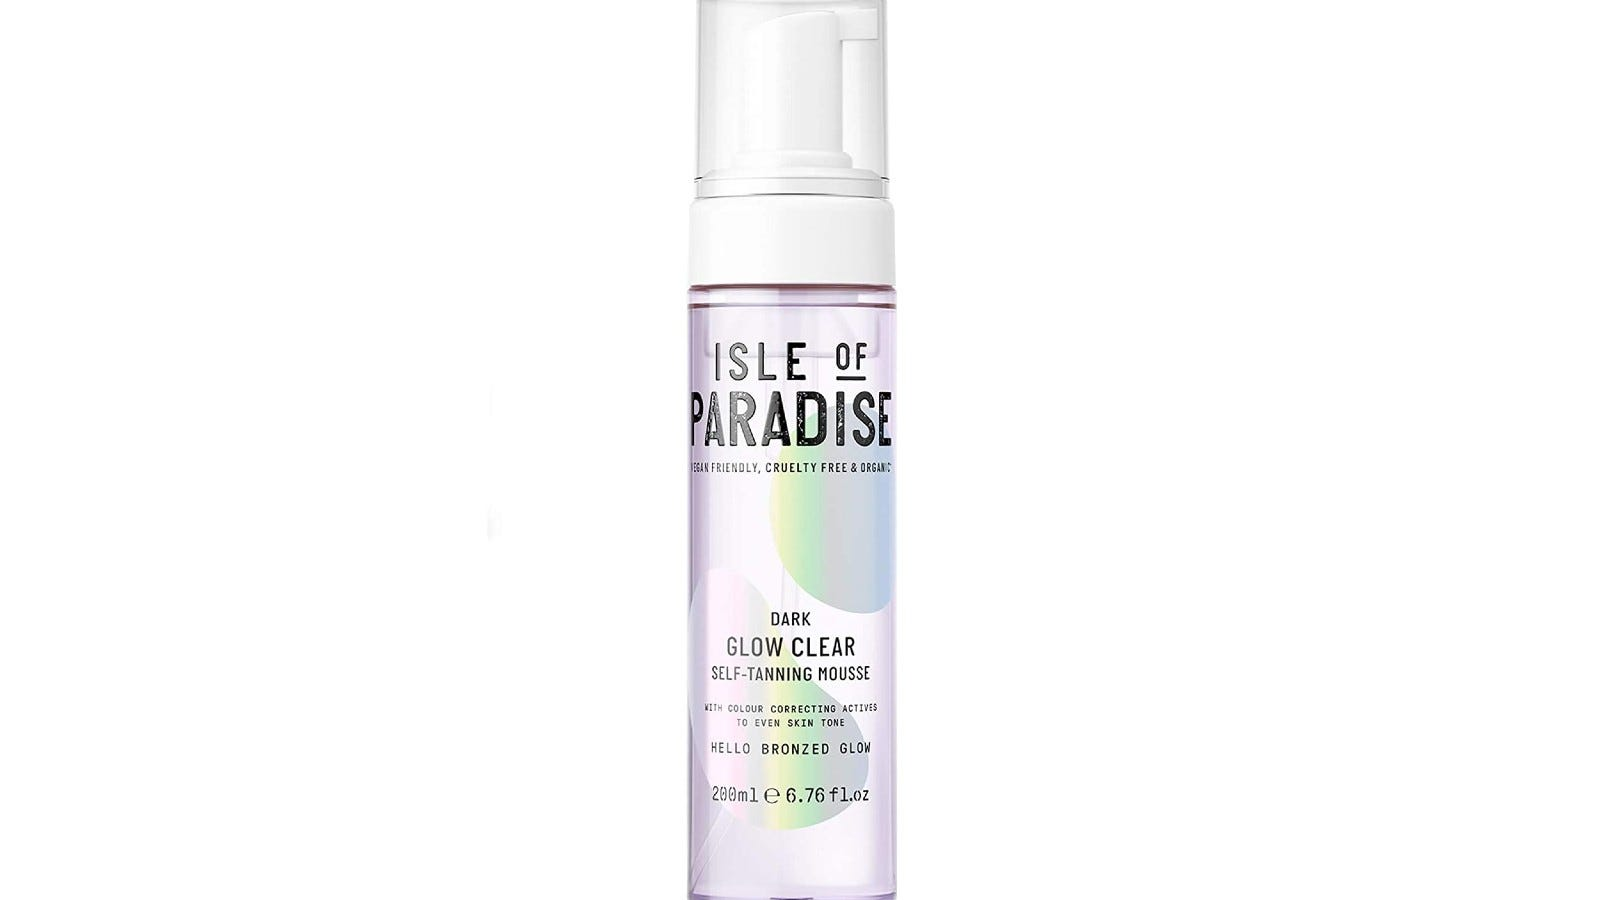 Isle of Paradise Glow Clear Self-Tanning Mousse